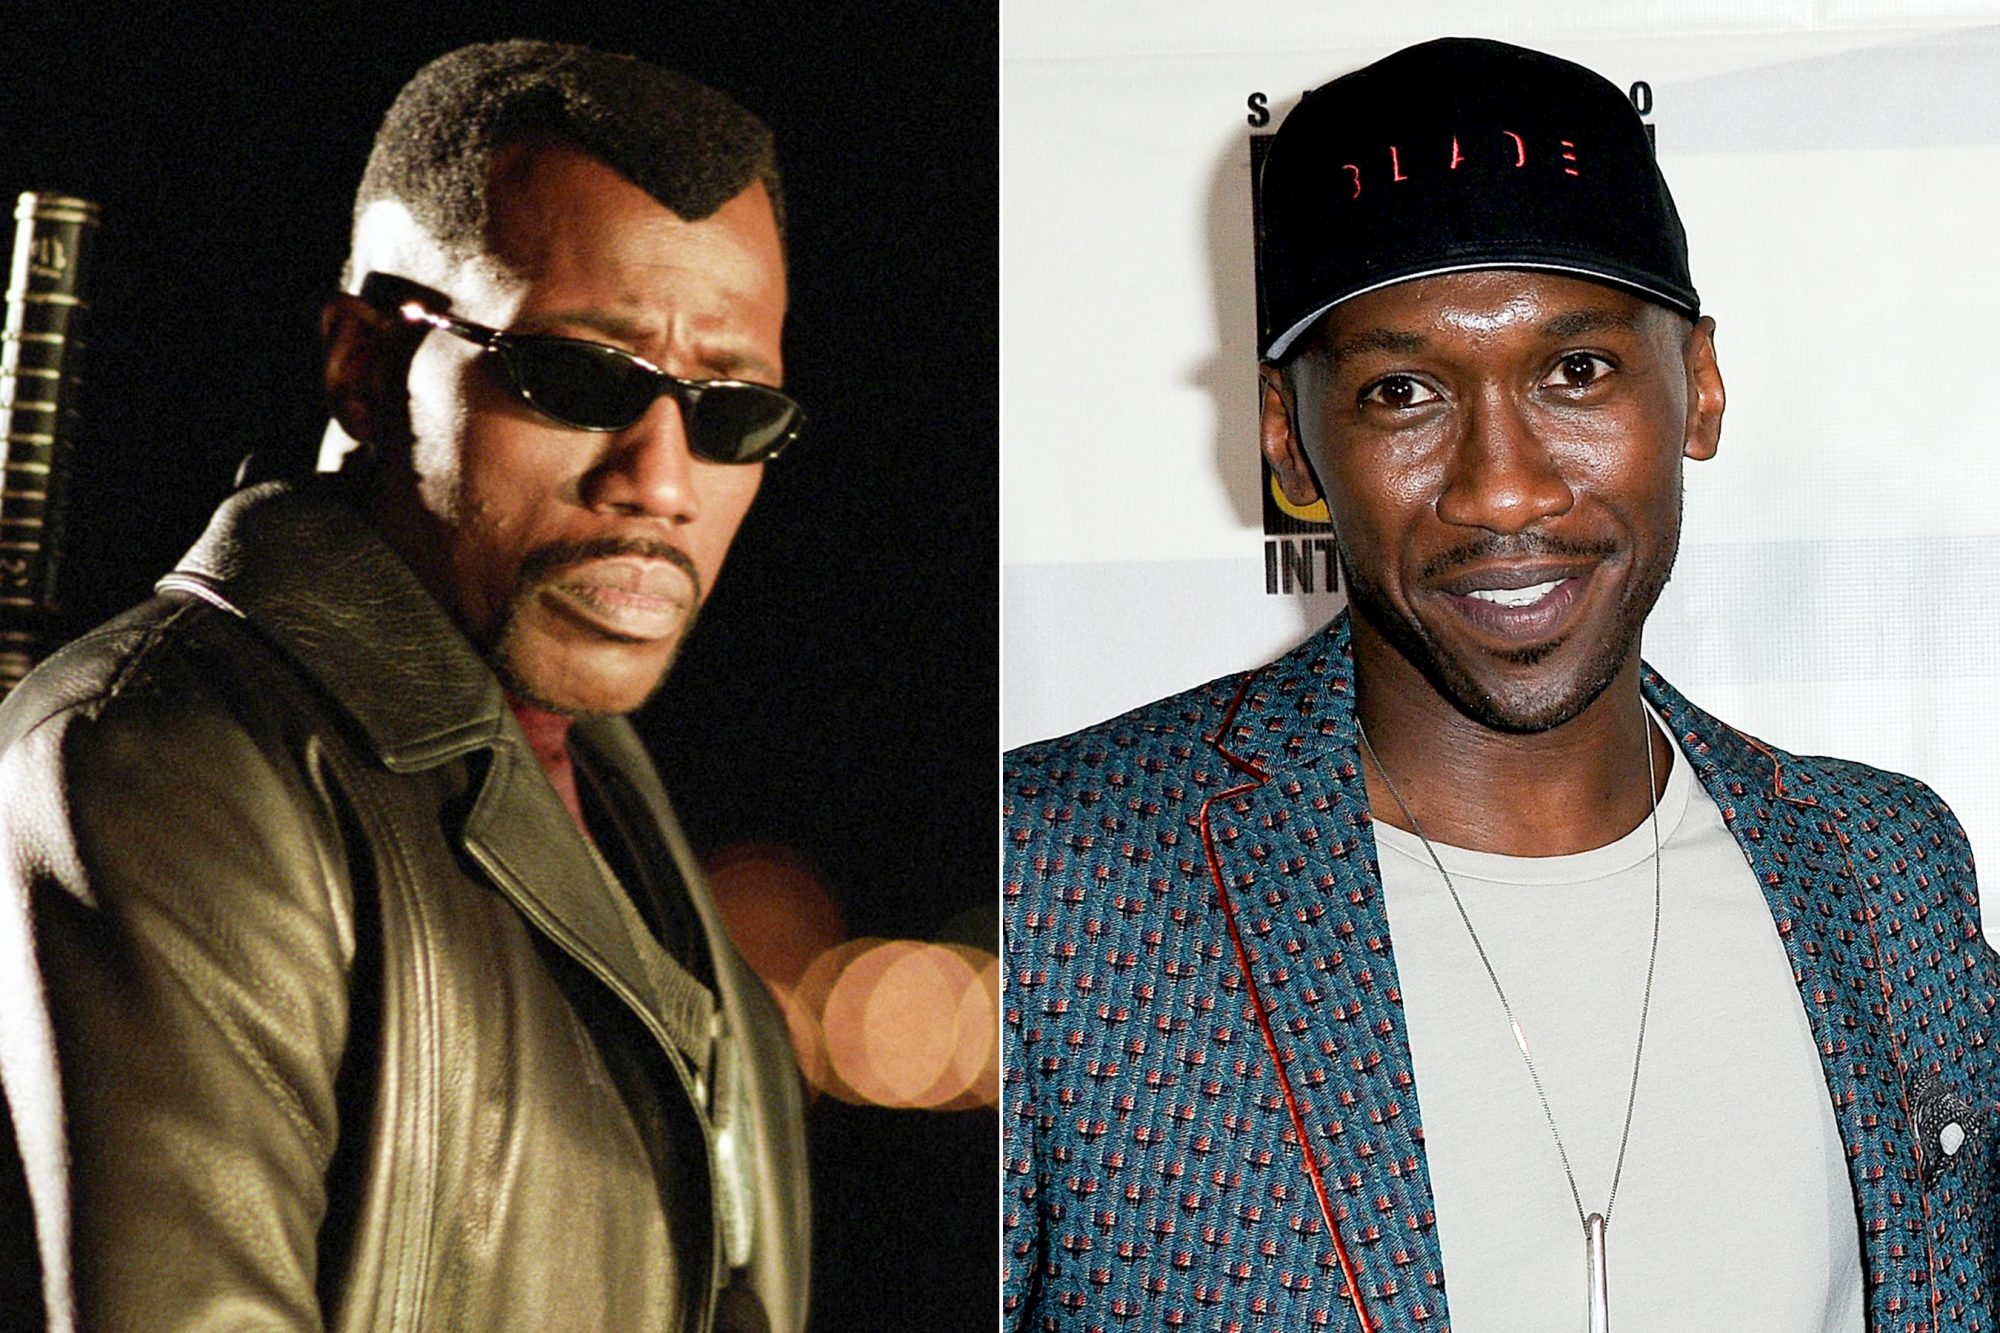 BLADE: TRINITY, Wesley Snipes, 2004, (c) New Line/courtesy Everett Collection SAN DIEGO, CALIFORNIA - JULY 20: Mahershala Ali attends Marvel Studios Panel during 2019 Comic-Con International at San Diego Convention Center on July 20, 2019 in San Diego, California. (Photo by Albert L. Ortega/Getty Images)